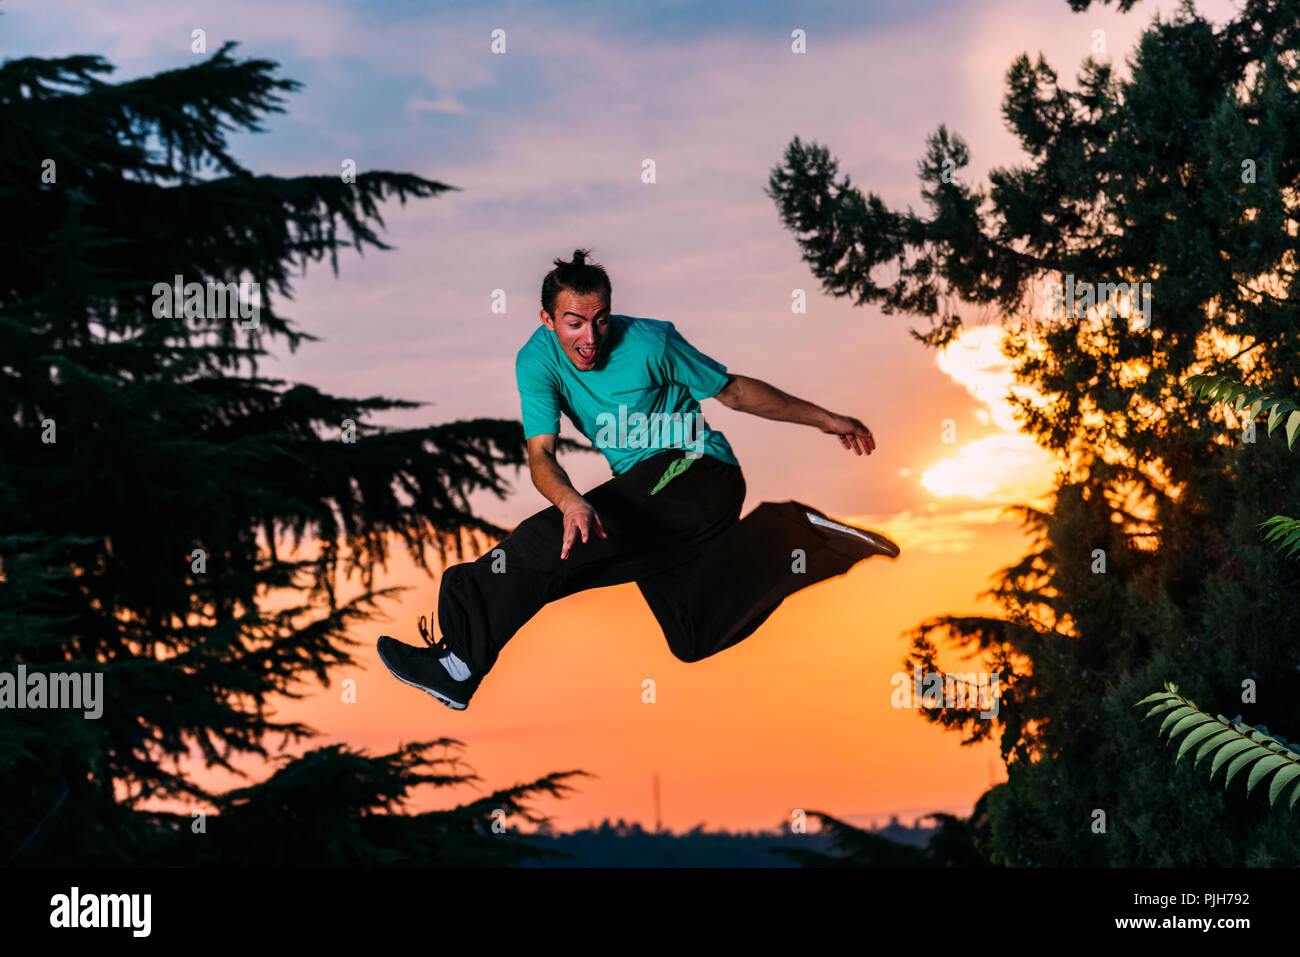 Parkour man is jumping and perform parkour sport - Stock Image